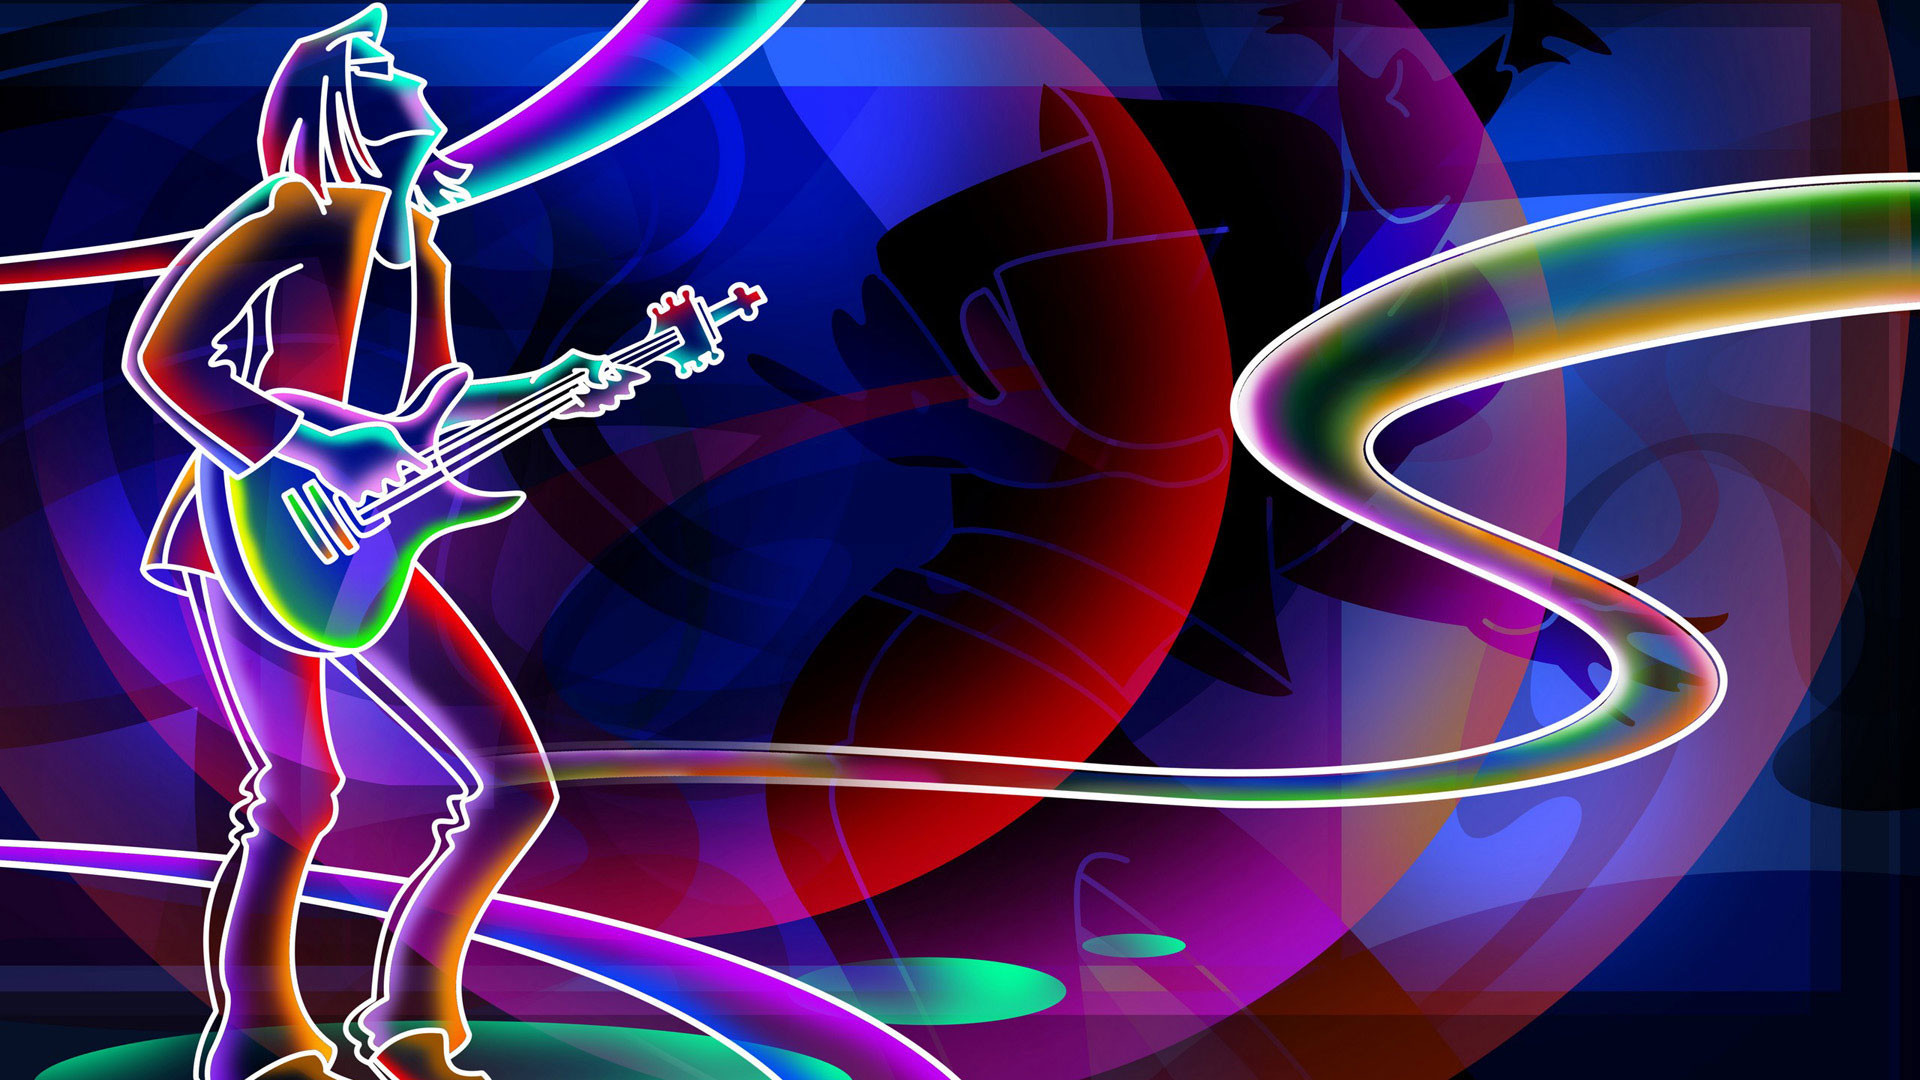 1920x1080  Neon Wallpapers Neon Backgrounds Neon Images Desktop Nexus